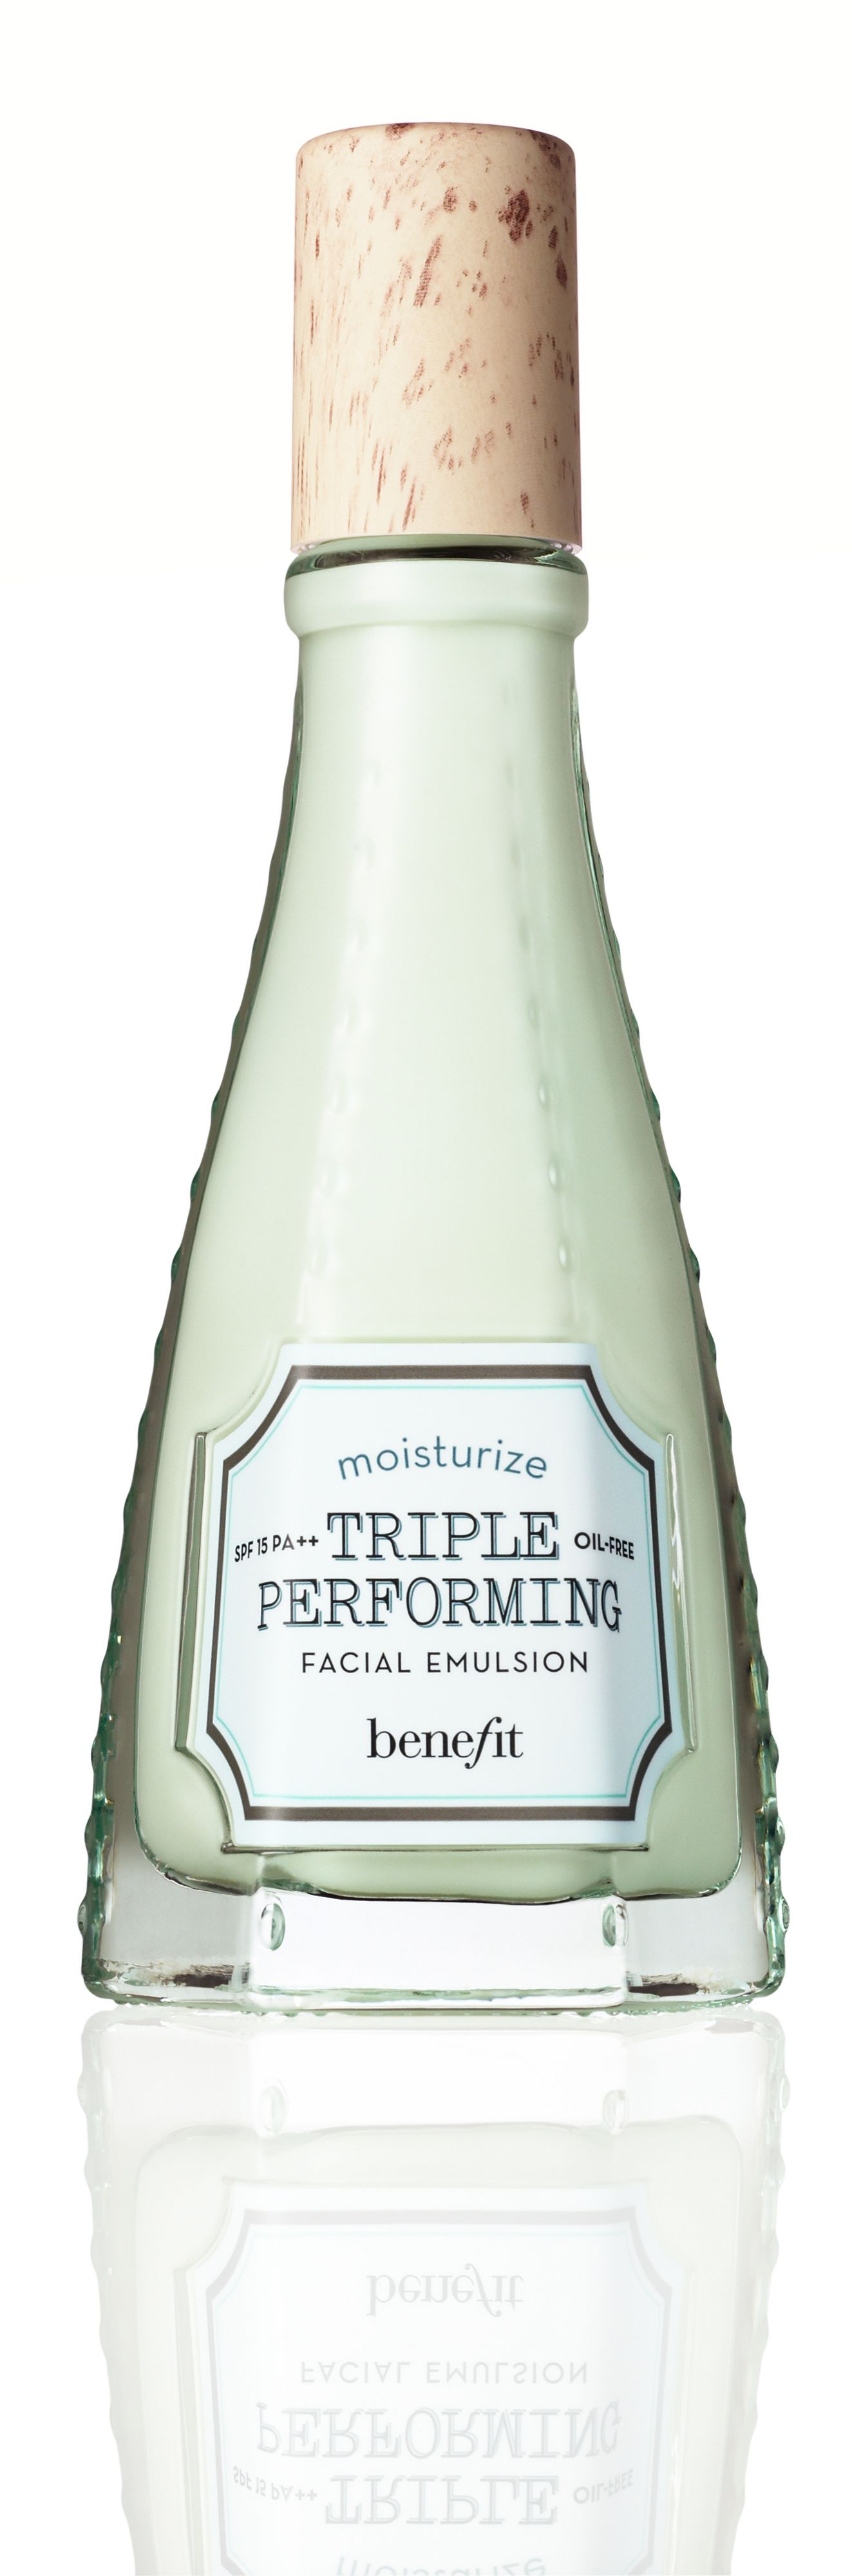 Benefit Triple Performing Facial Emulsion SPF15 PA++